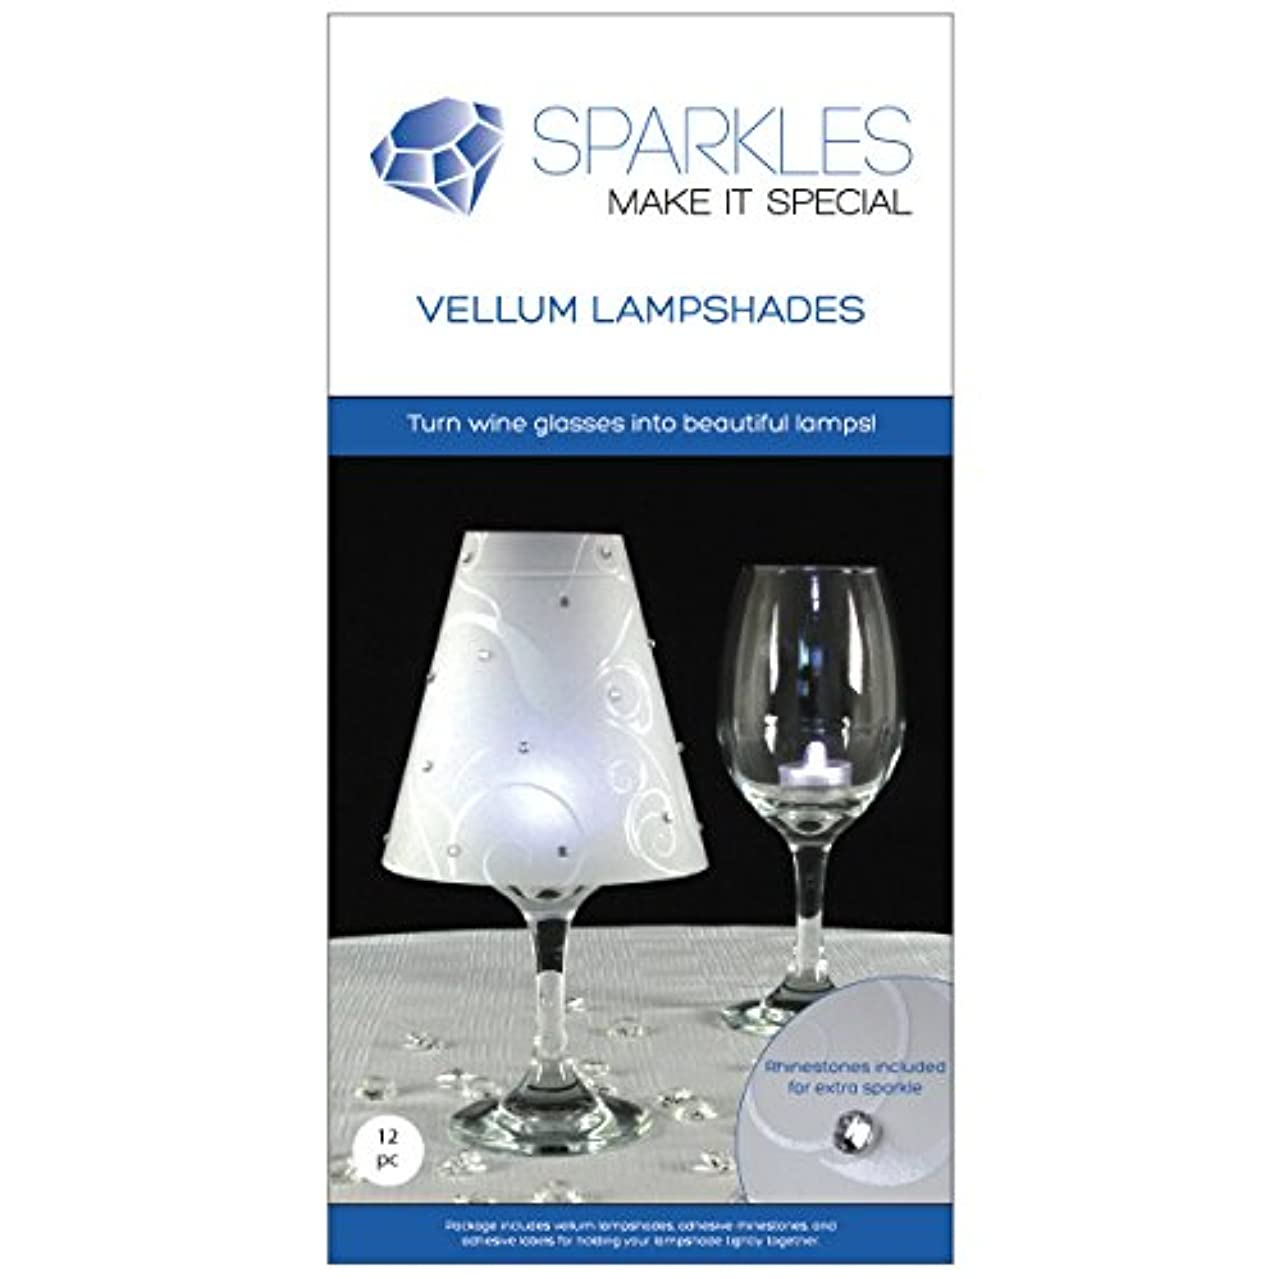 Sparkles Make It Special 12 pc Wine Glass Lamp Shades with Rhinestones - Wedding Party Table Centerpiece Decoration - White Vellum Swirl Print